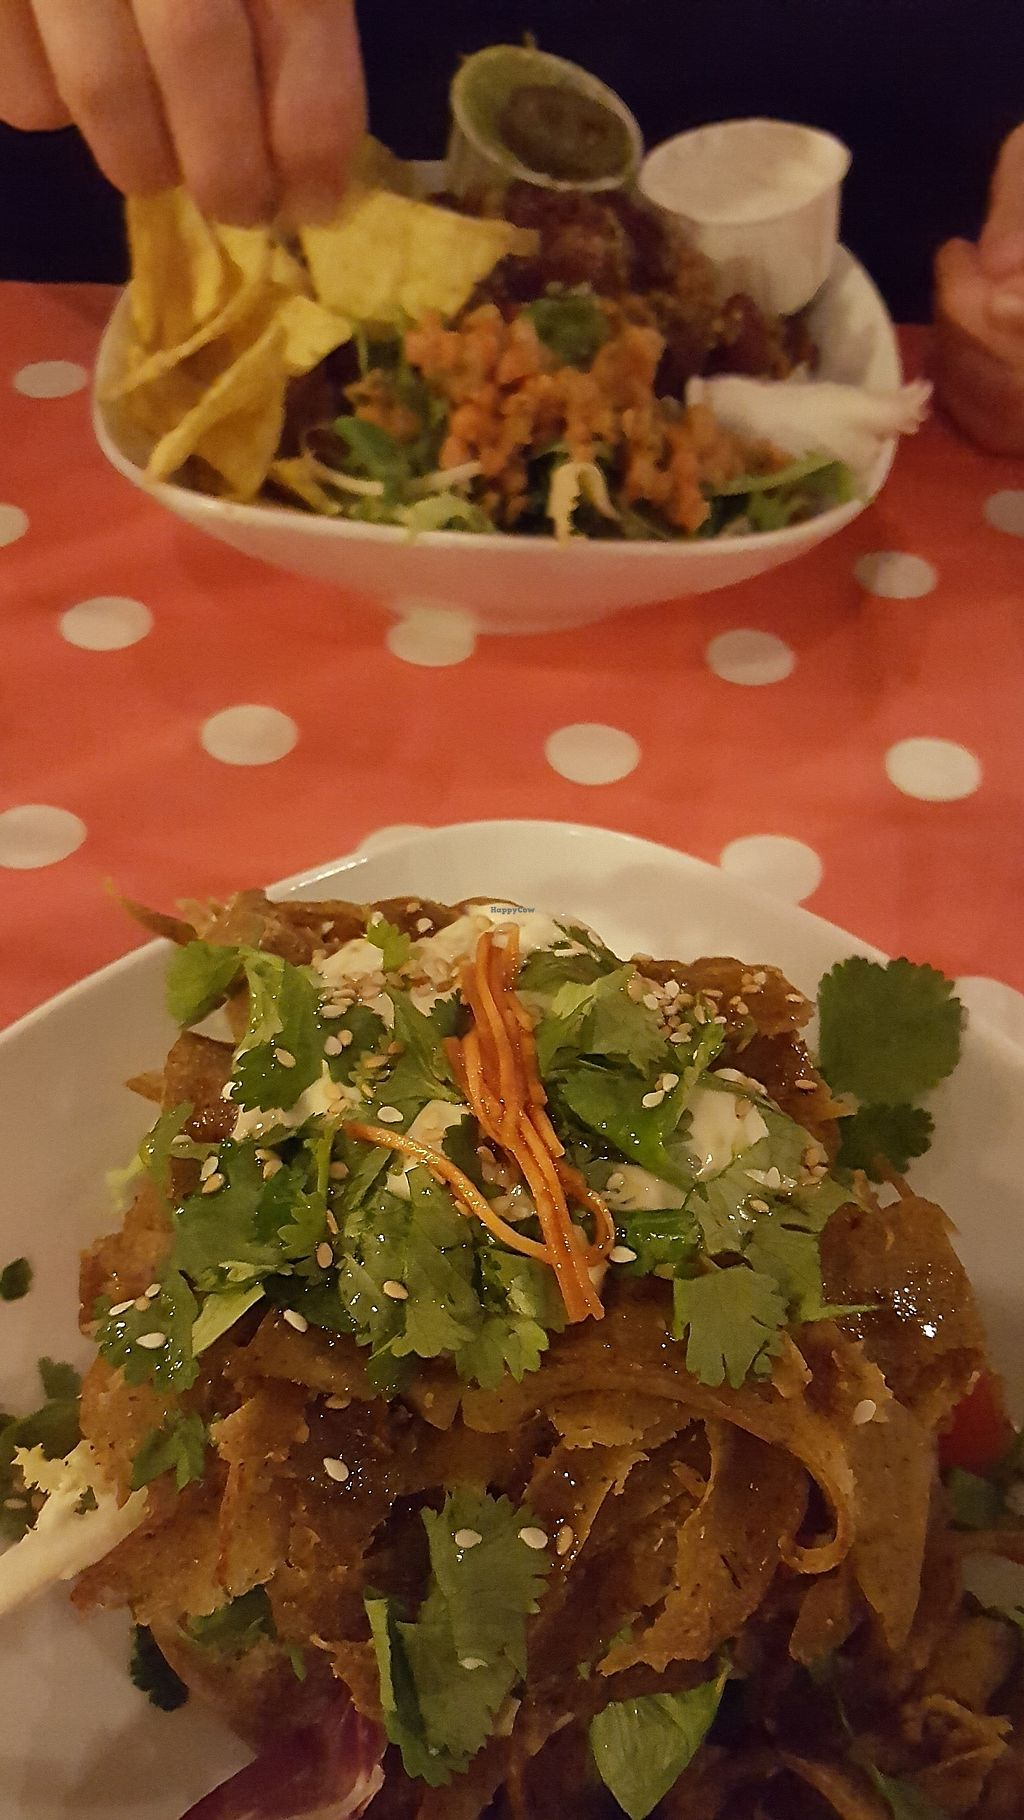 """Photo of Tapatat  by <a href=""""/members/profile/VeganAnnaS"""">VeganAnnaS</a> <br/>Best jacket potato ever! <br/> February 17, 2018  - <a href='/contact/abuse/image/104205/360480'>Report</a>"""